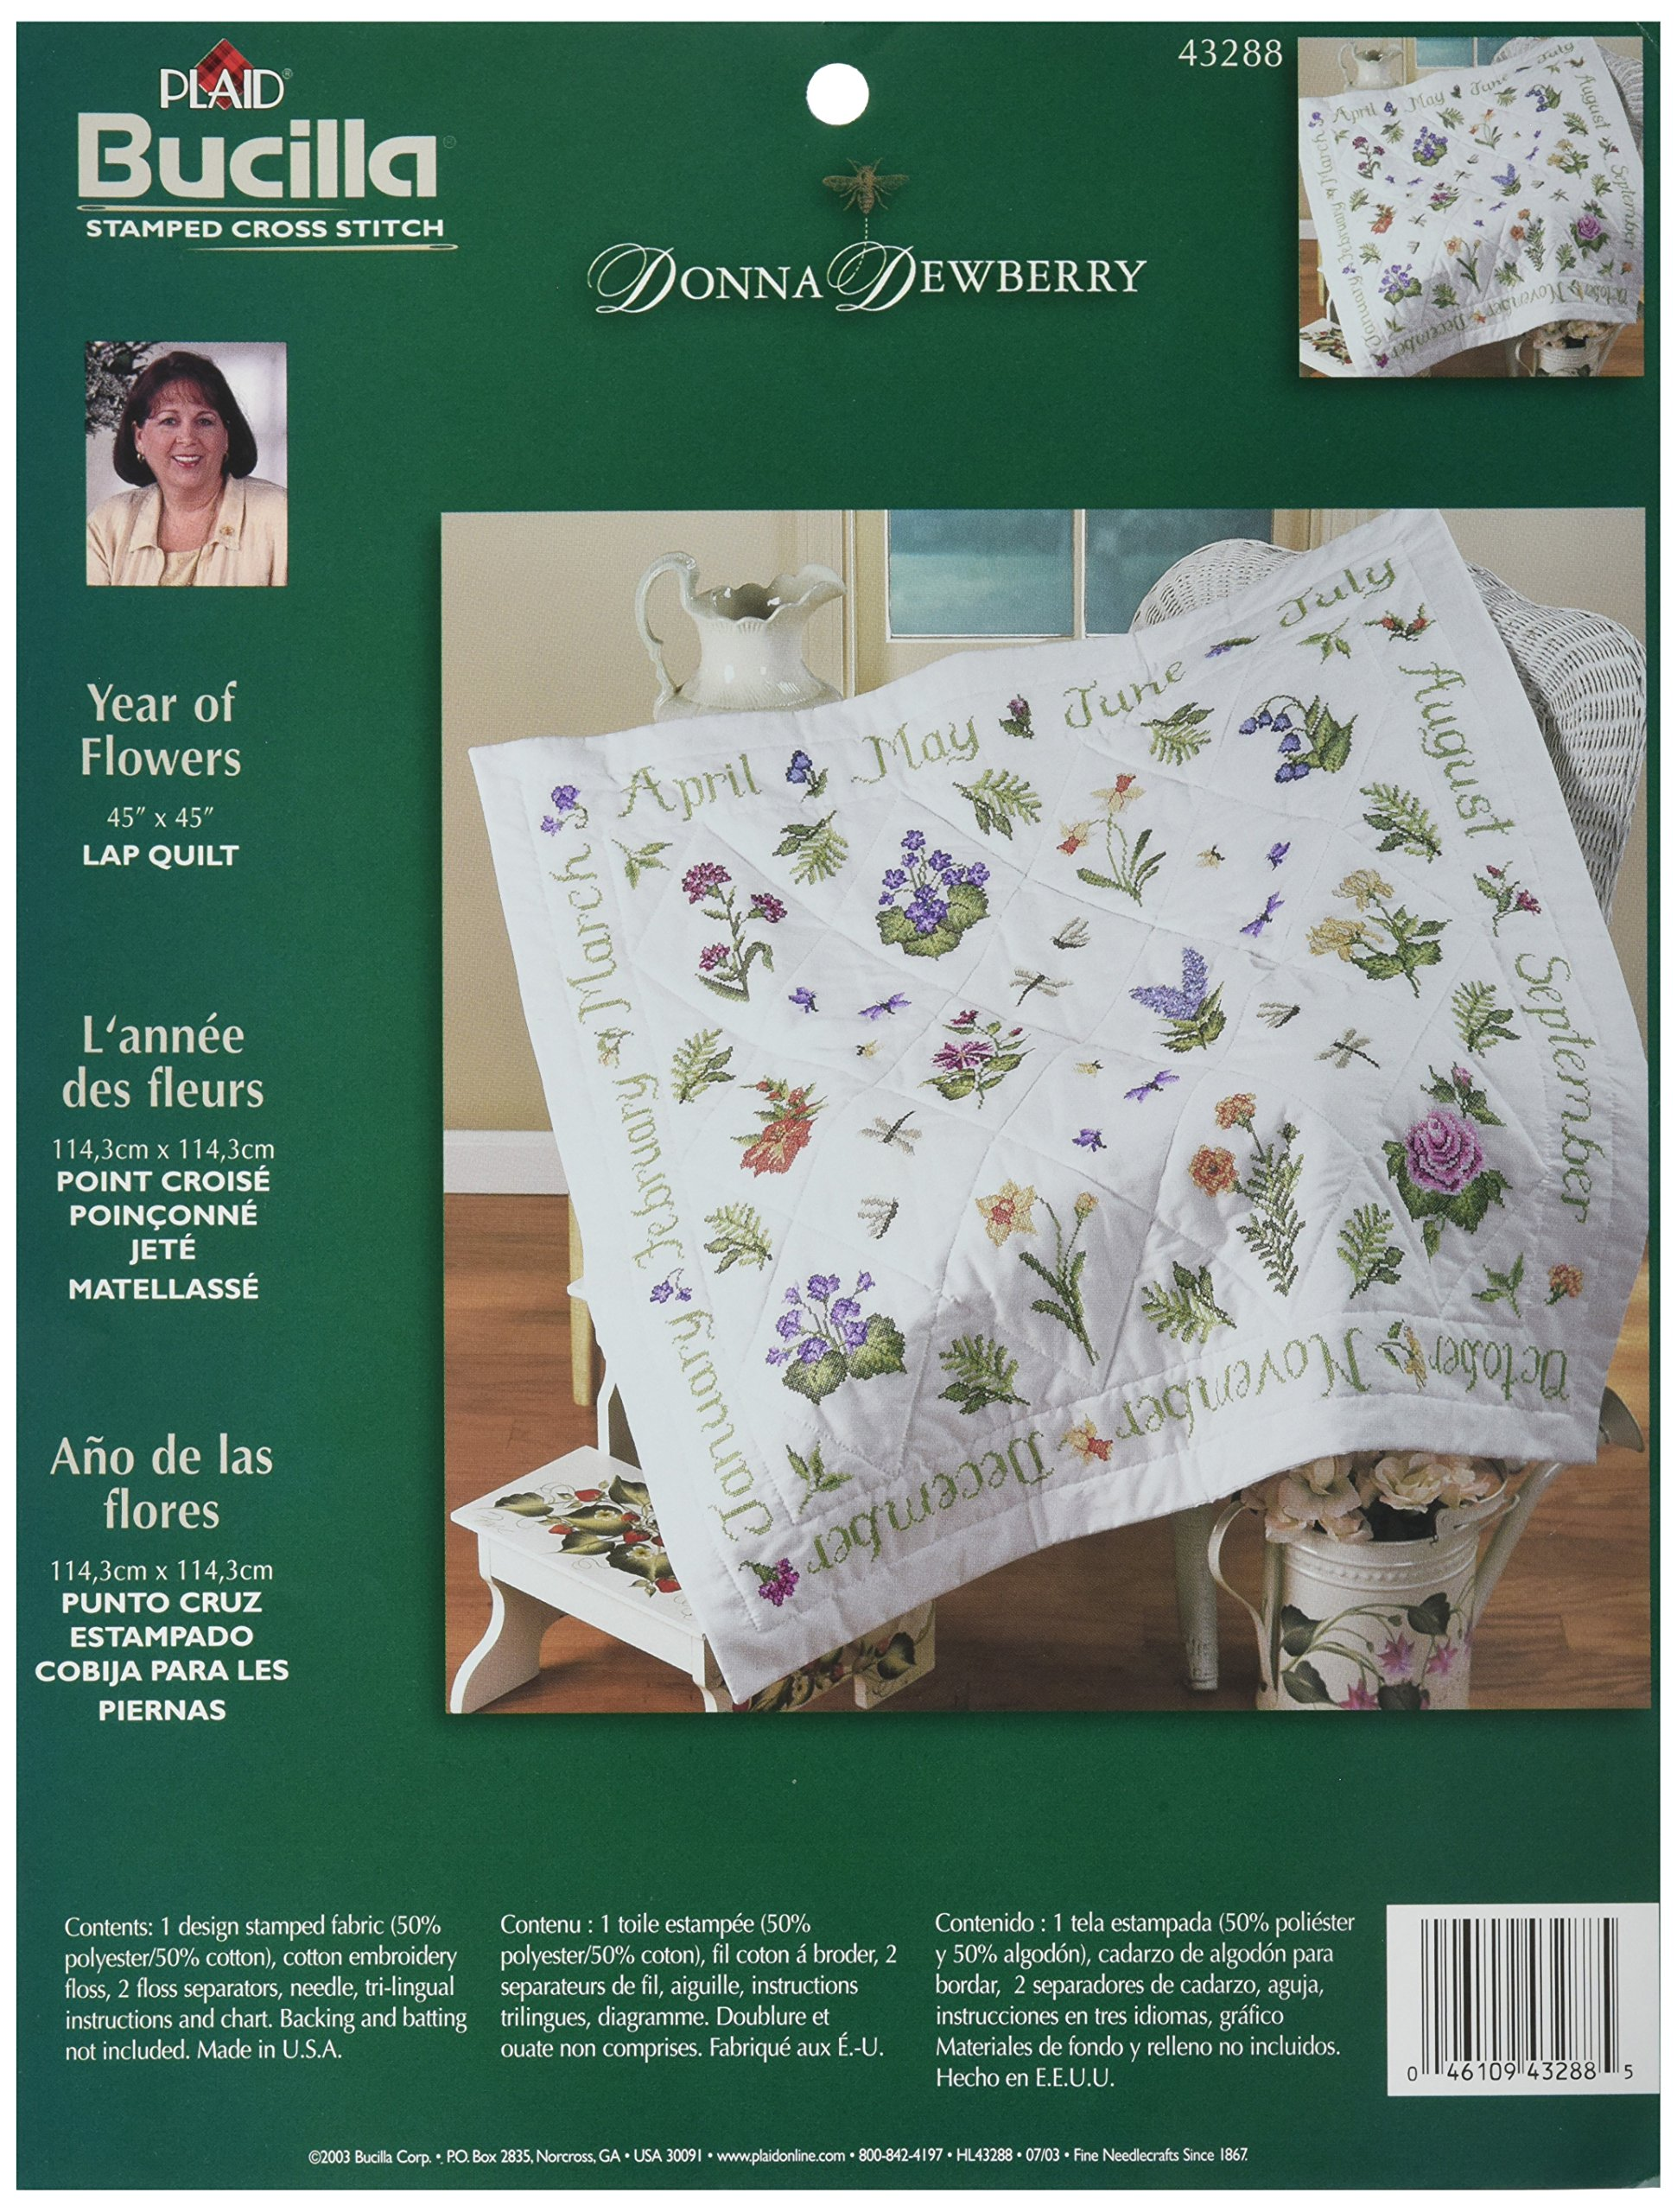 Bucilla Stamped Cross Stitch Lap Quilt Kit, 40 by 40-Inch, 43288 Year of Flowers